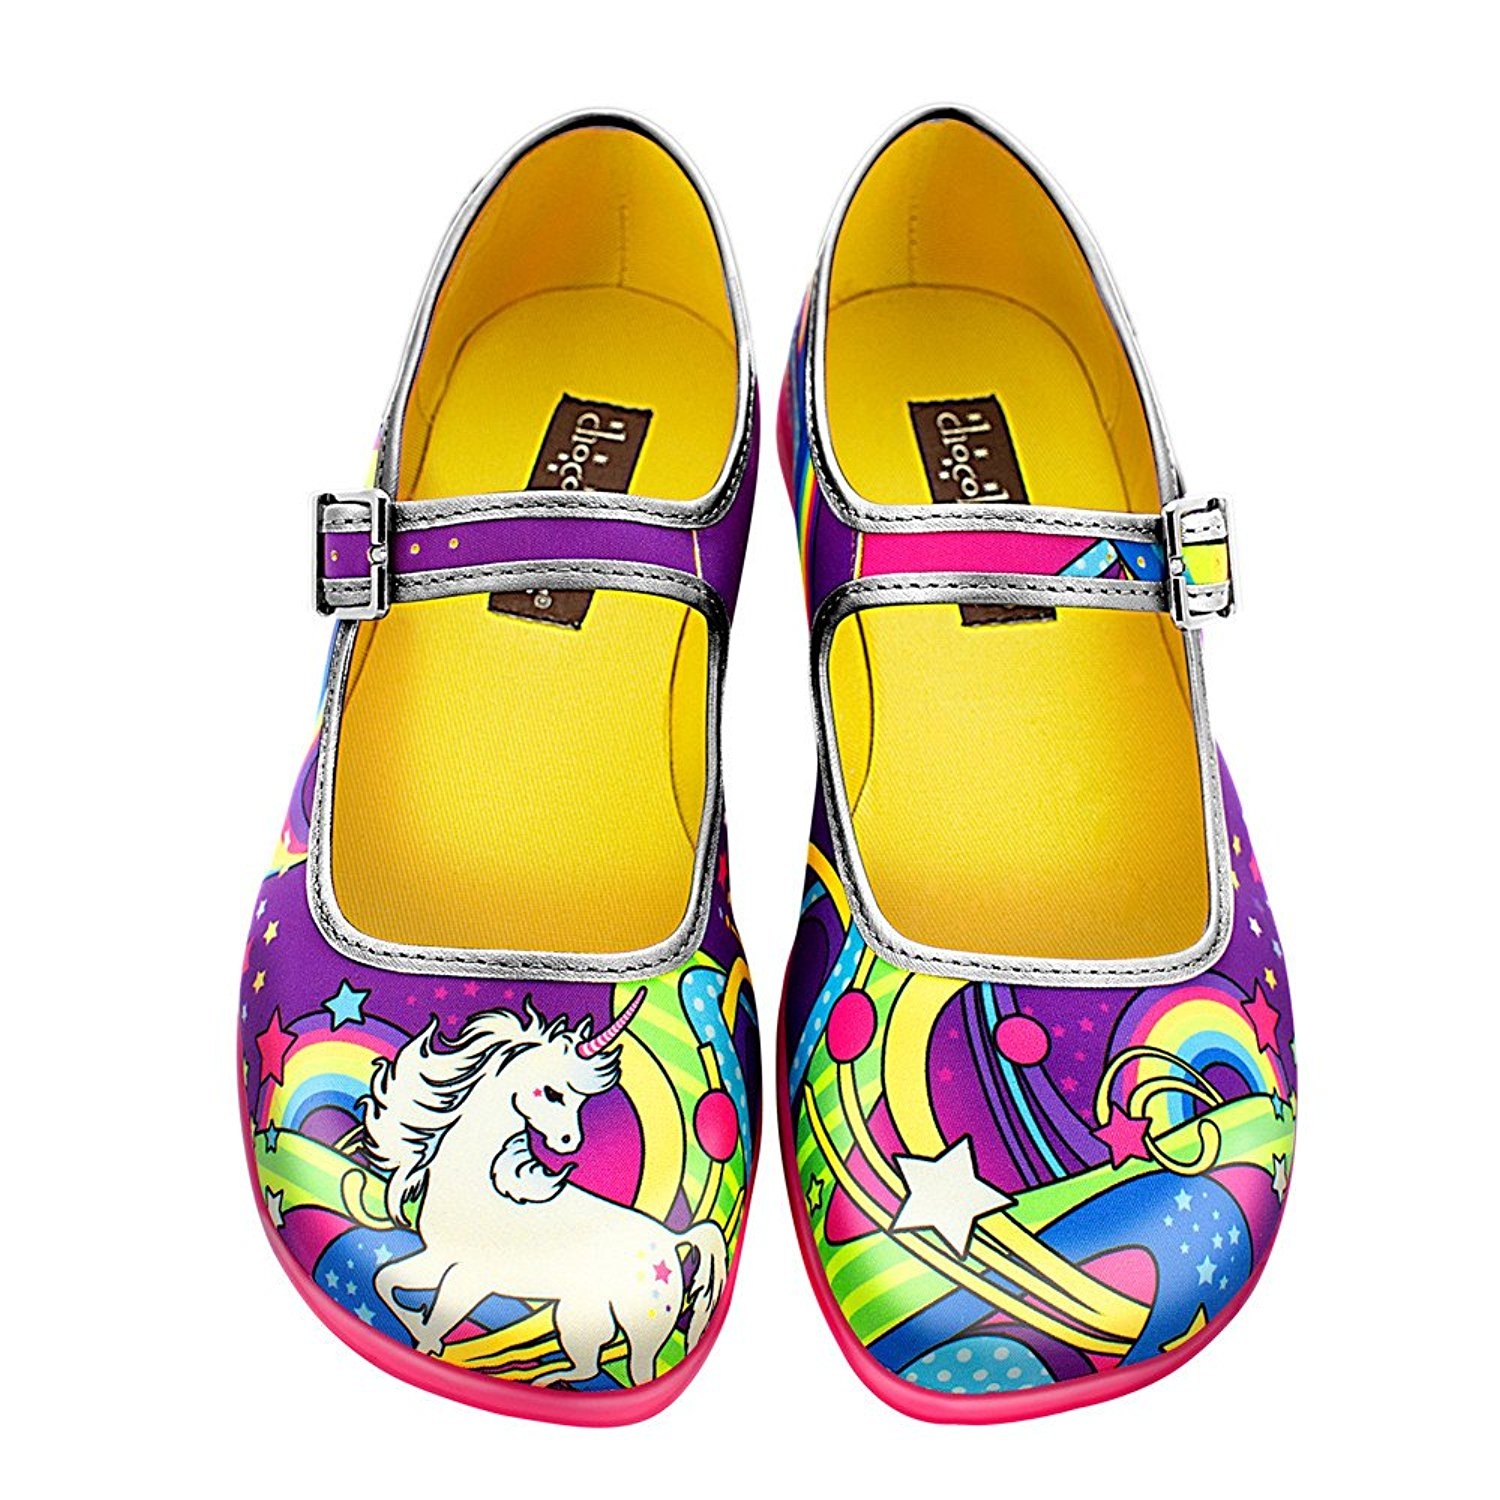 Unicorn Mary Jane Flats